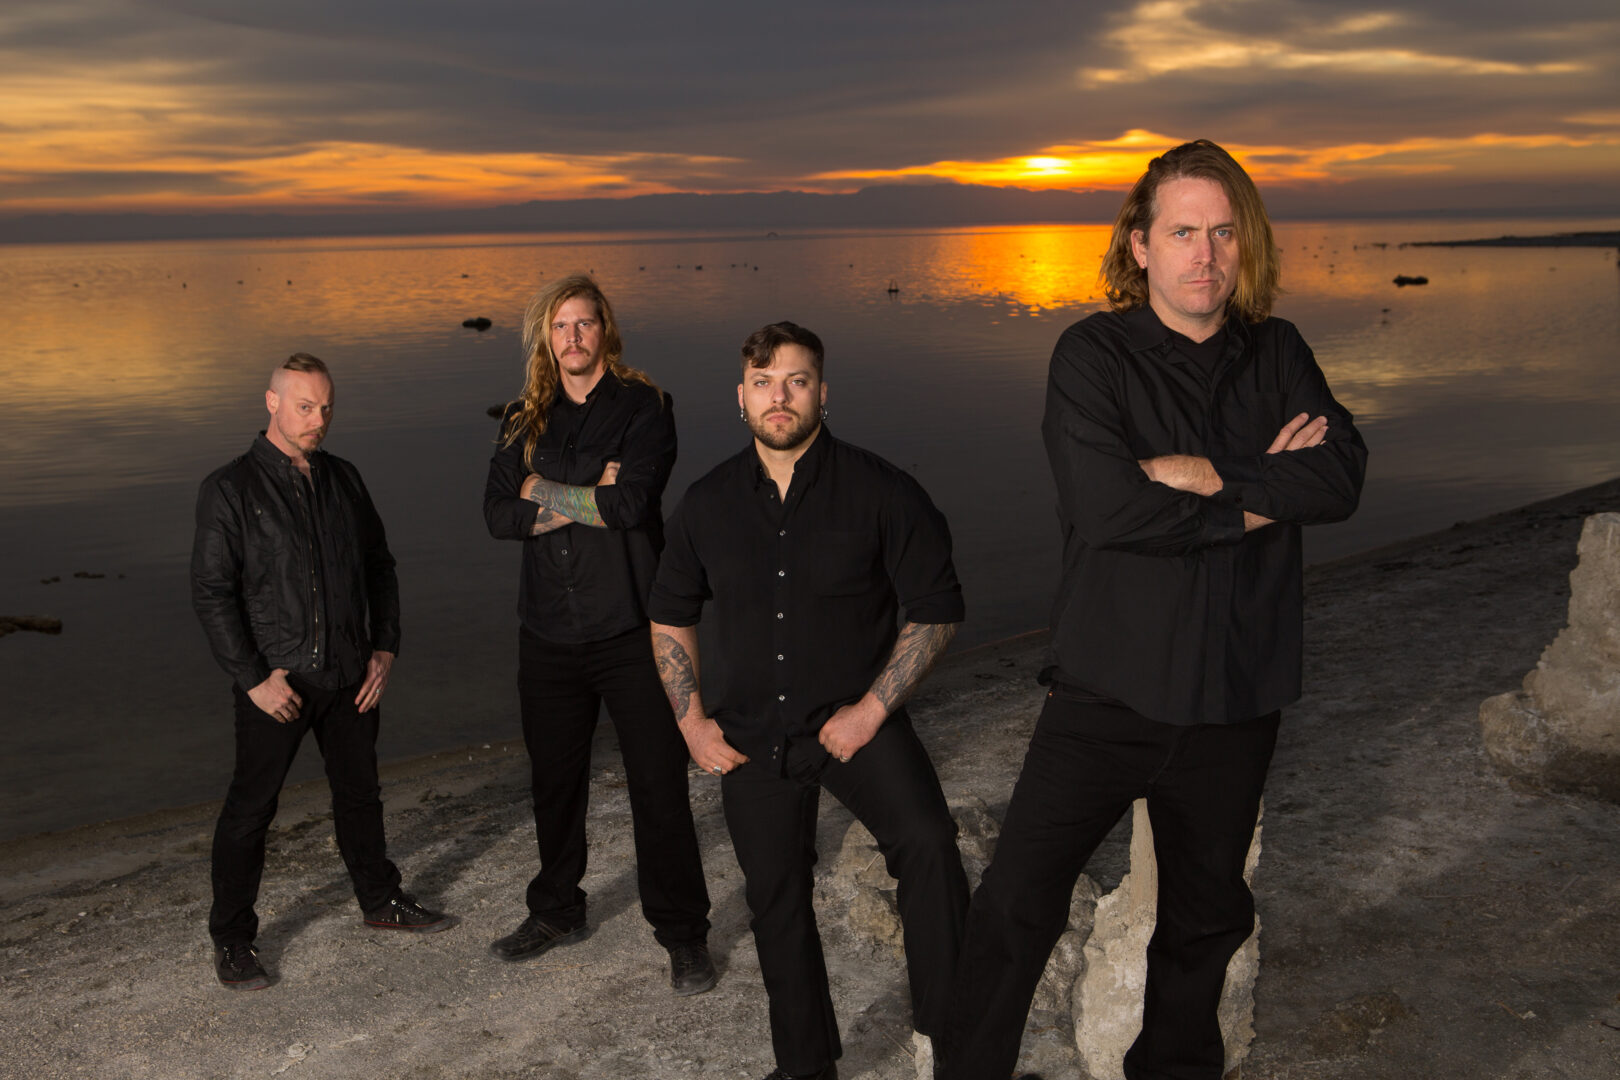 Cattle Decapitation Announce U.S. Tour